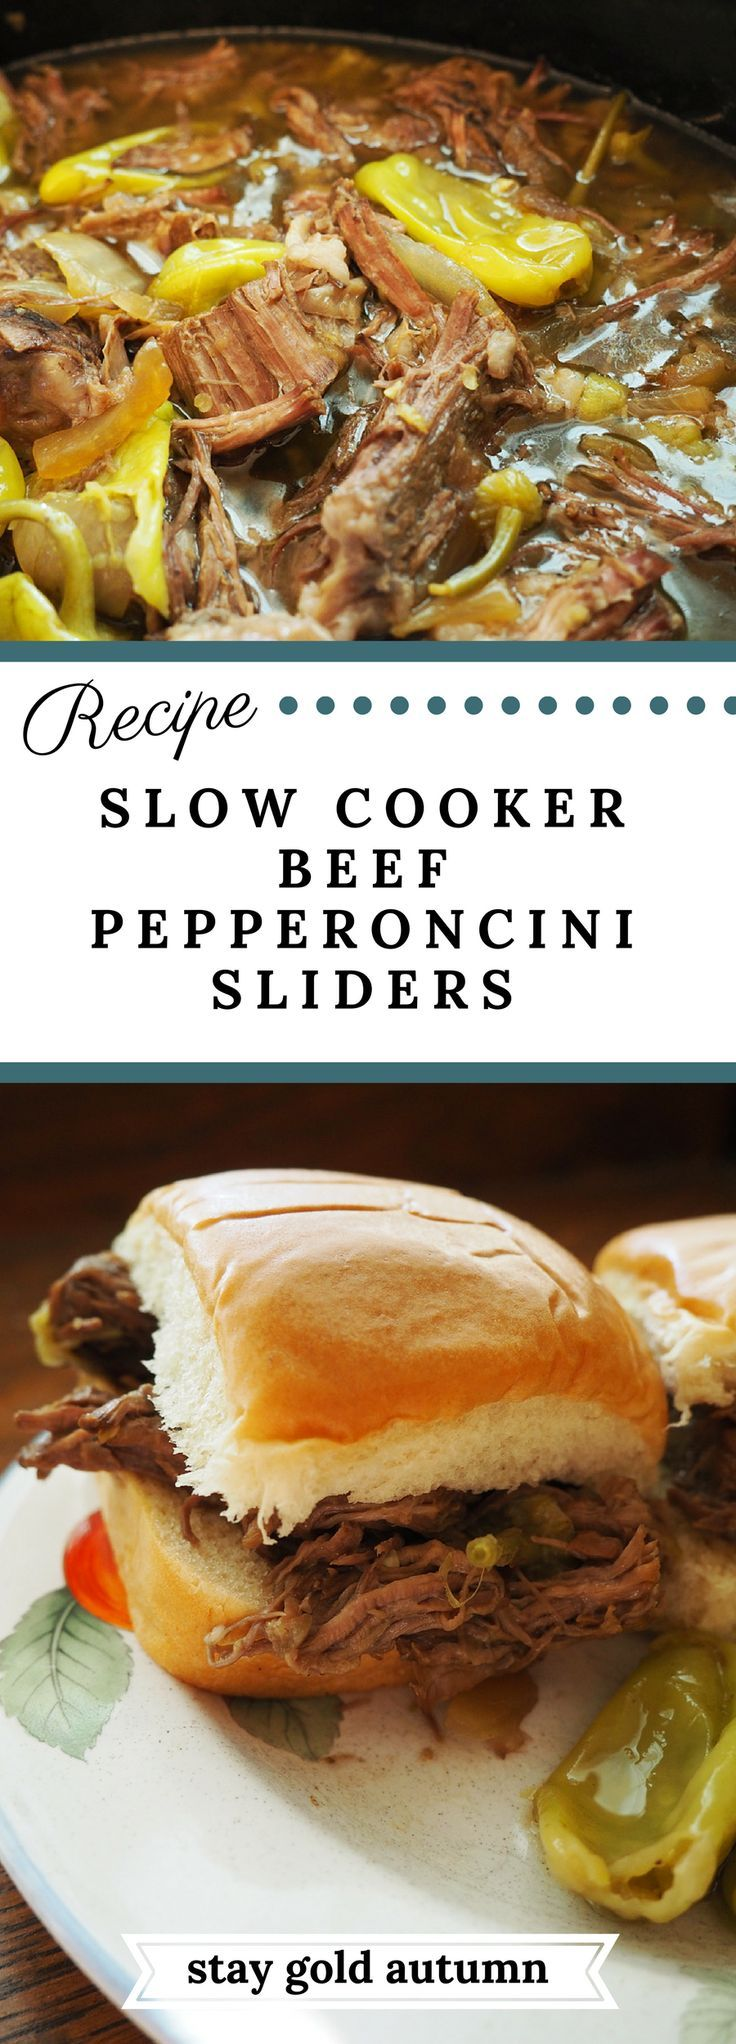 slow cooker beef pepercini sliders: I put this on before I went to bed and my house smelled wonderful when I woke up!! I shredded the meat to put them on sliders. This was a childhood favorite and a big hit with my family! | Stay gold Autumn